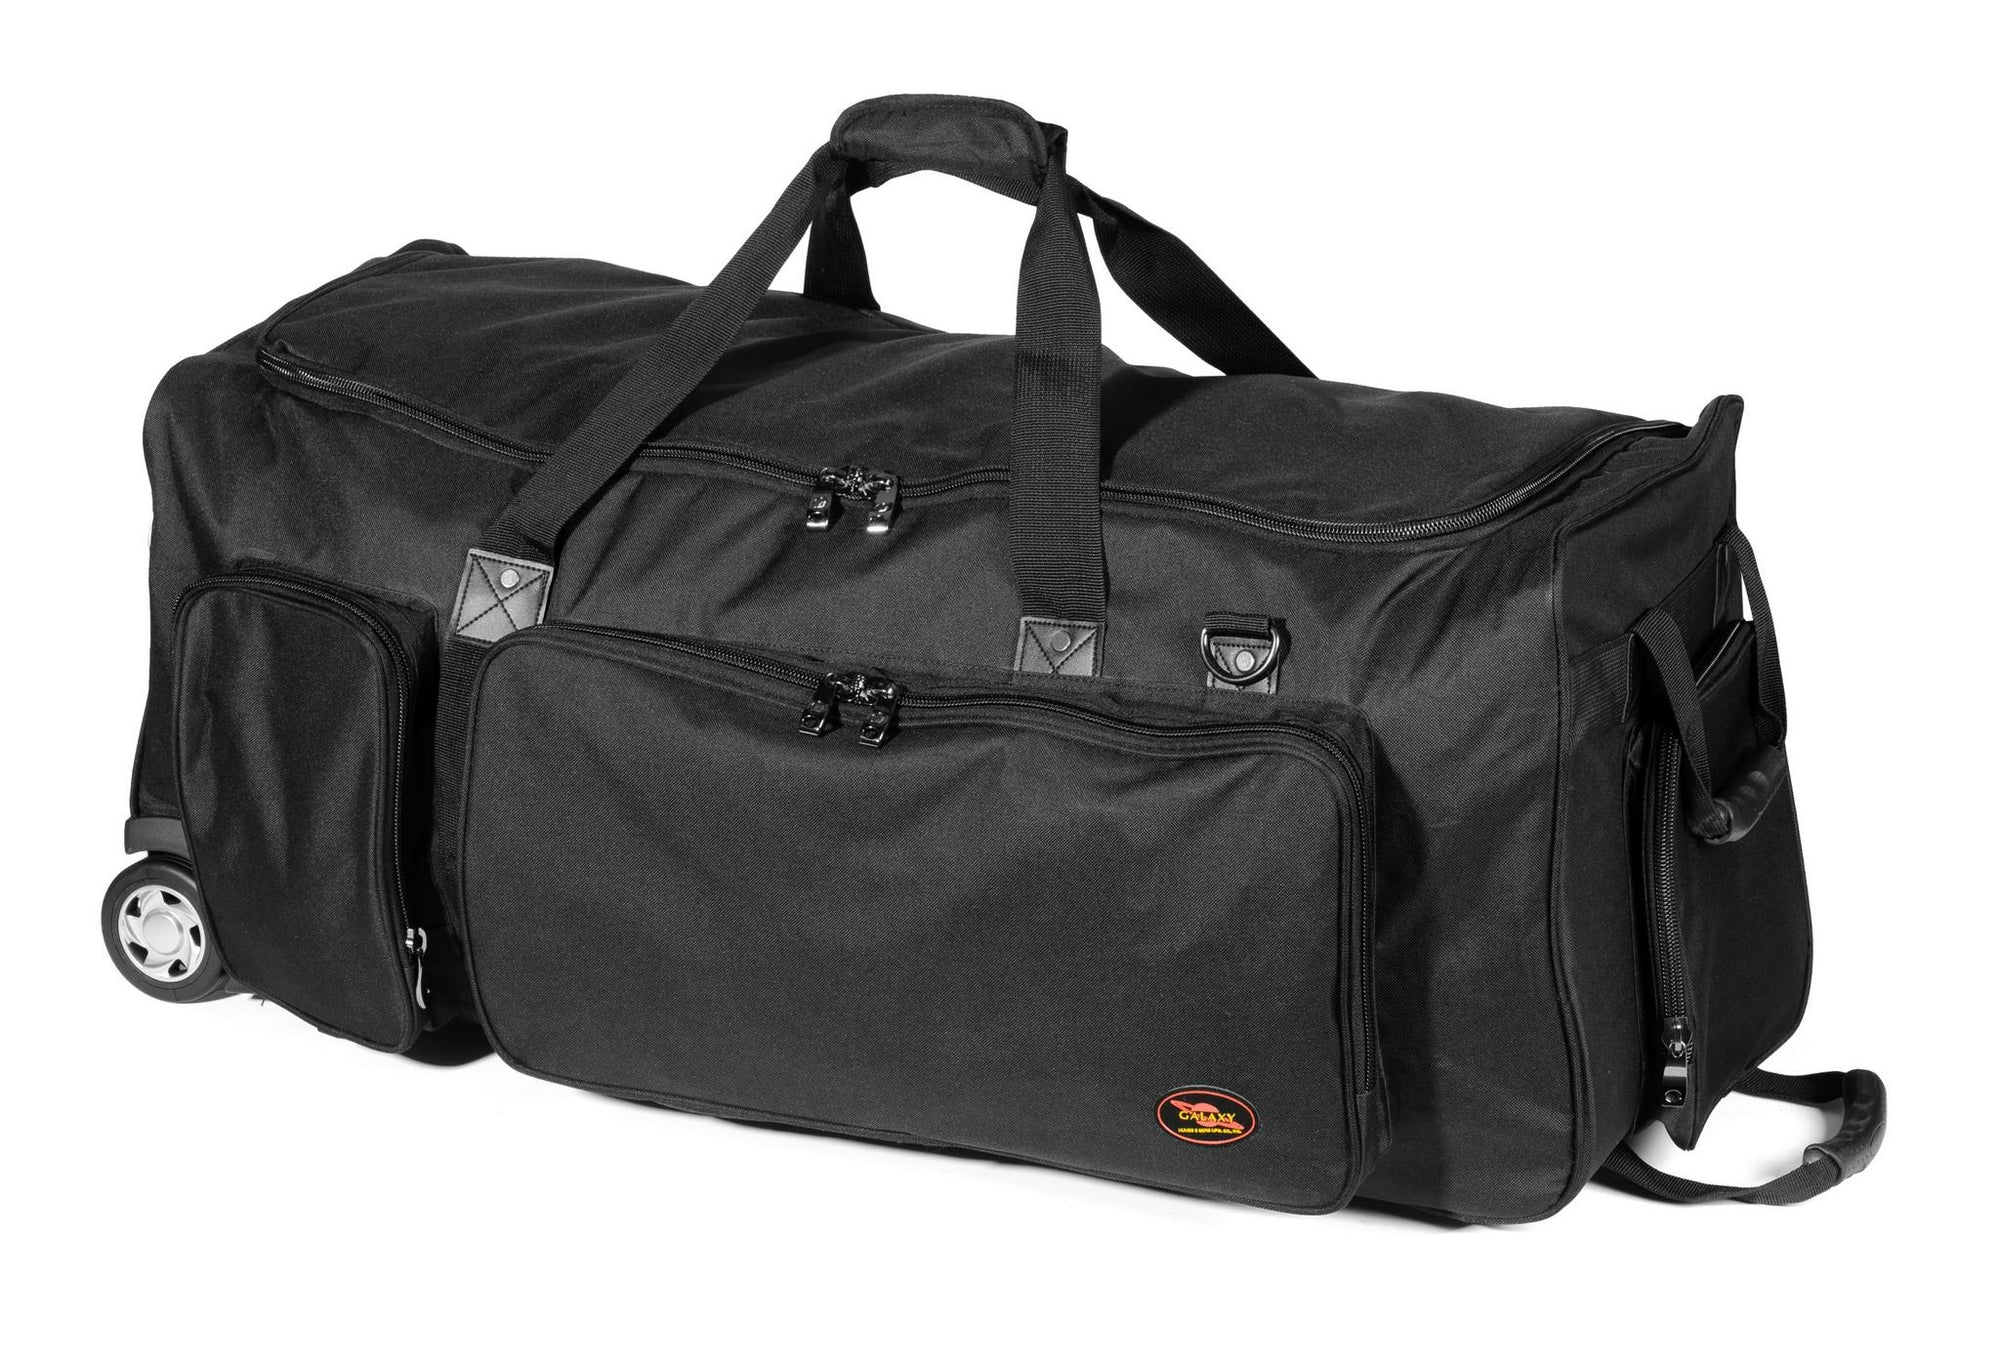 H&B  Galaxy 38 x 14.5 Inches Companion Bag Tilt-n-Pull